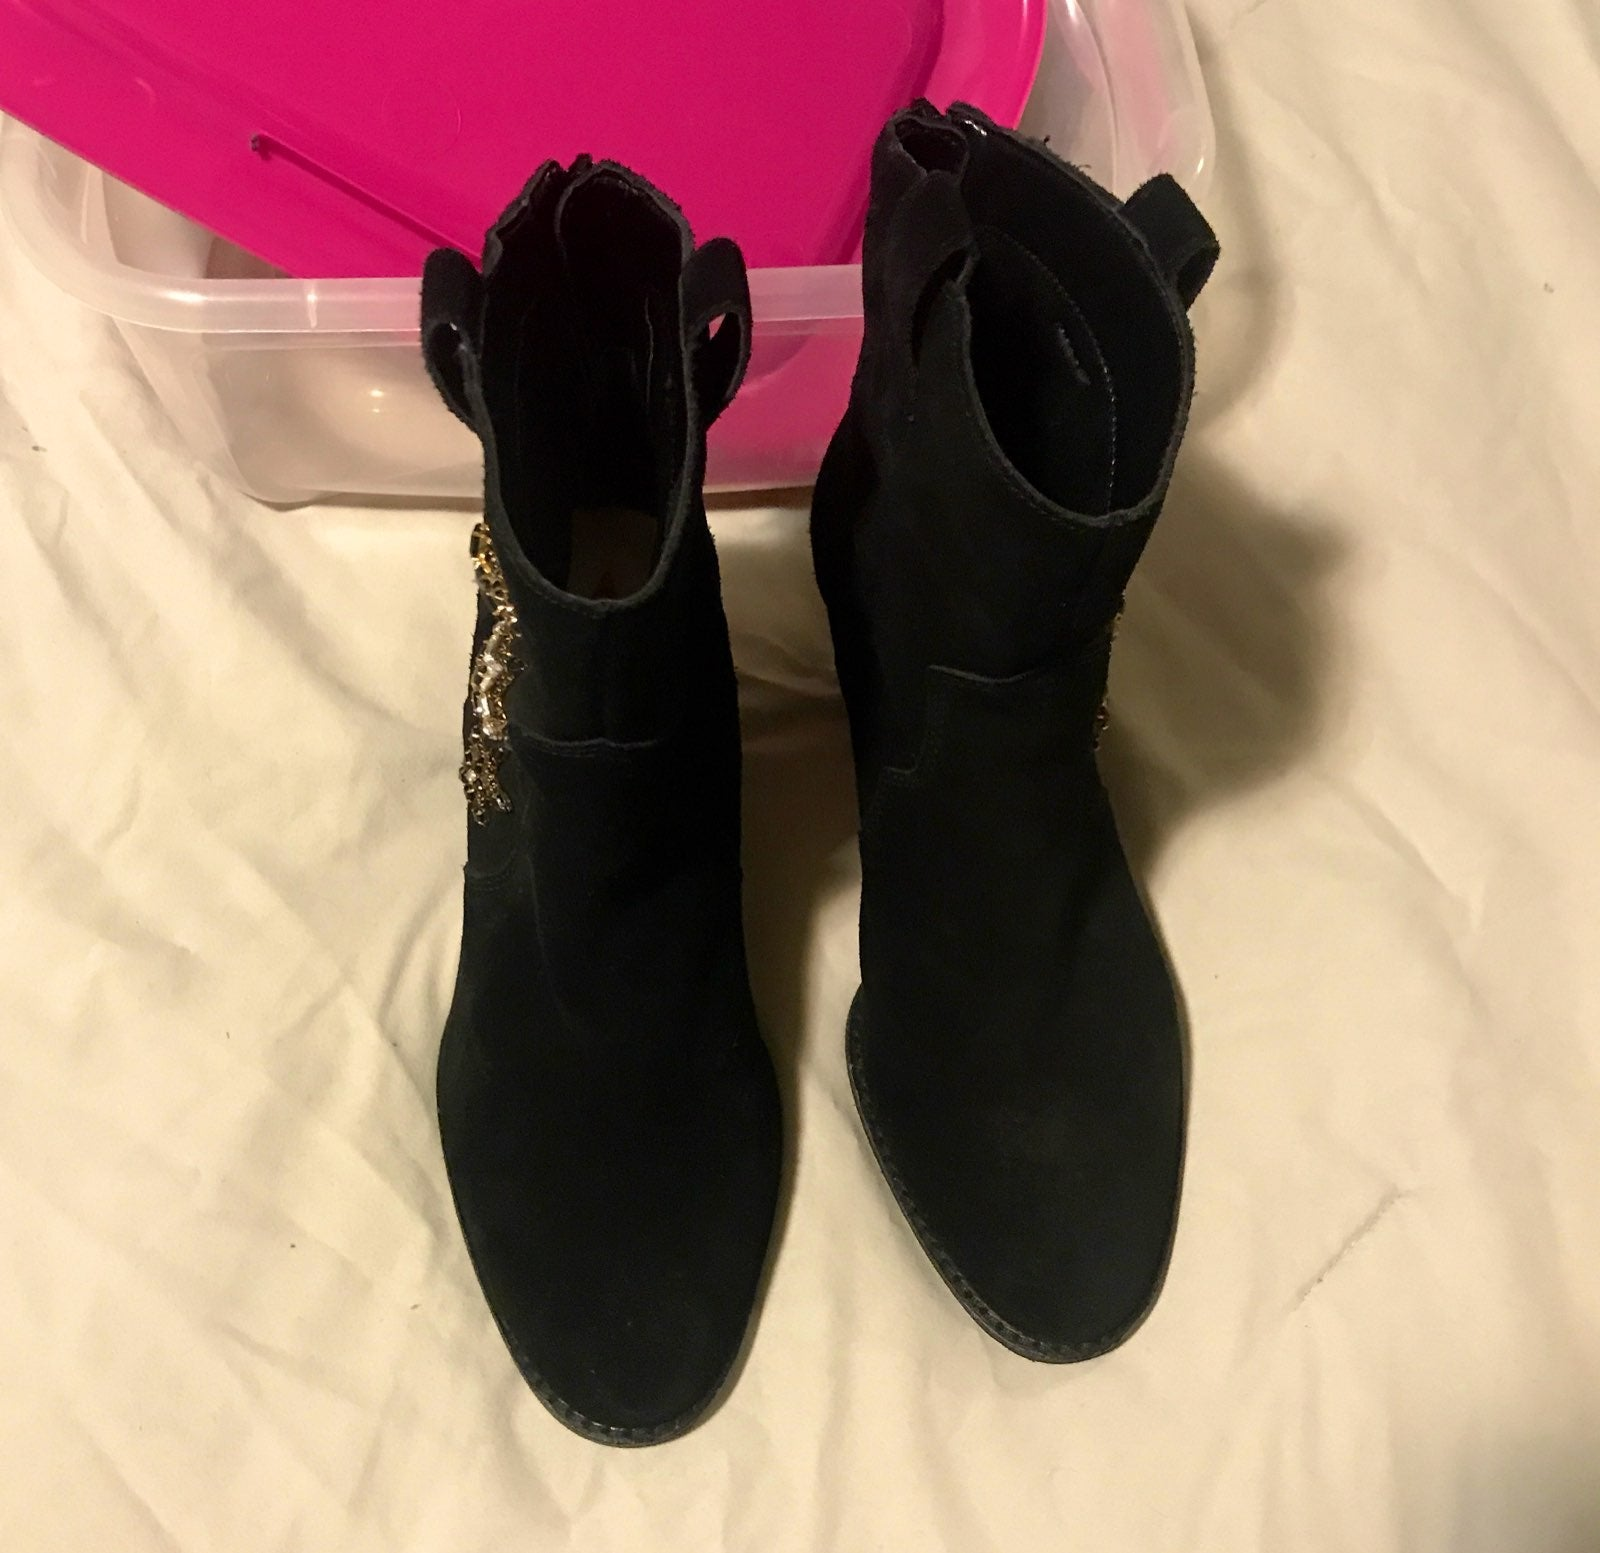 Anna Sui Inc Boots 6.5